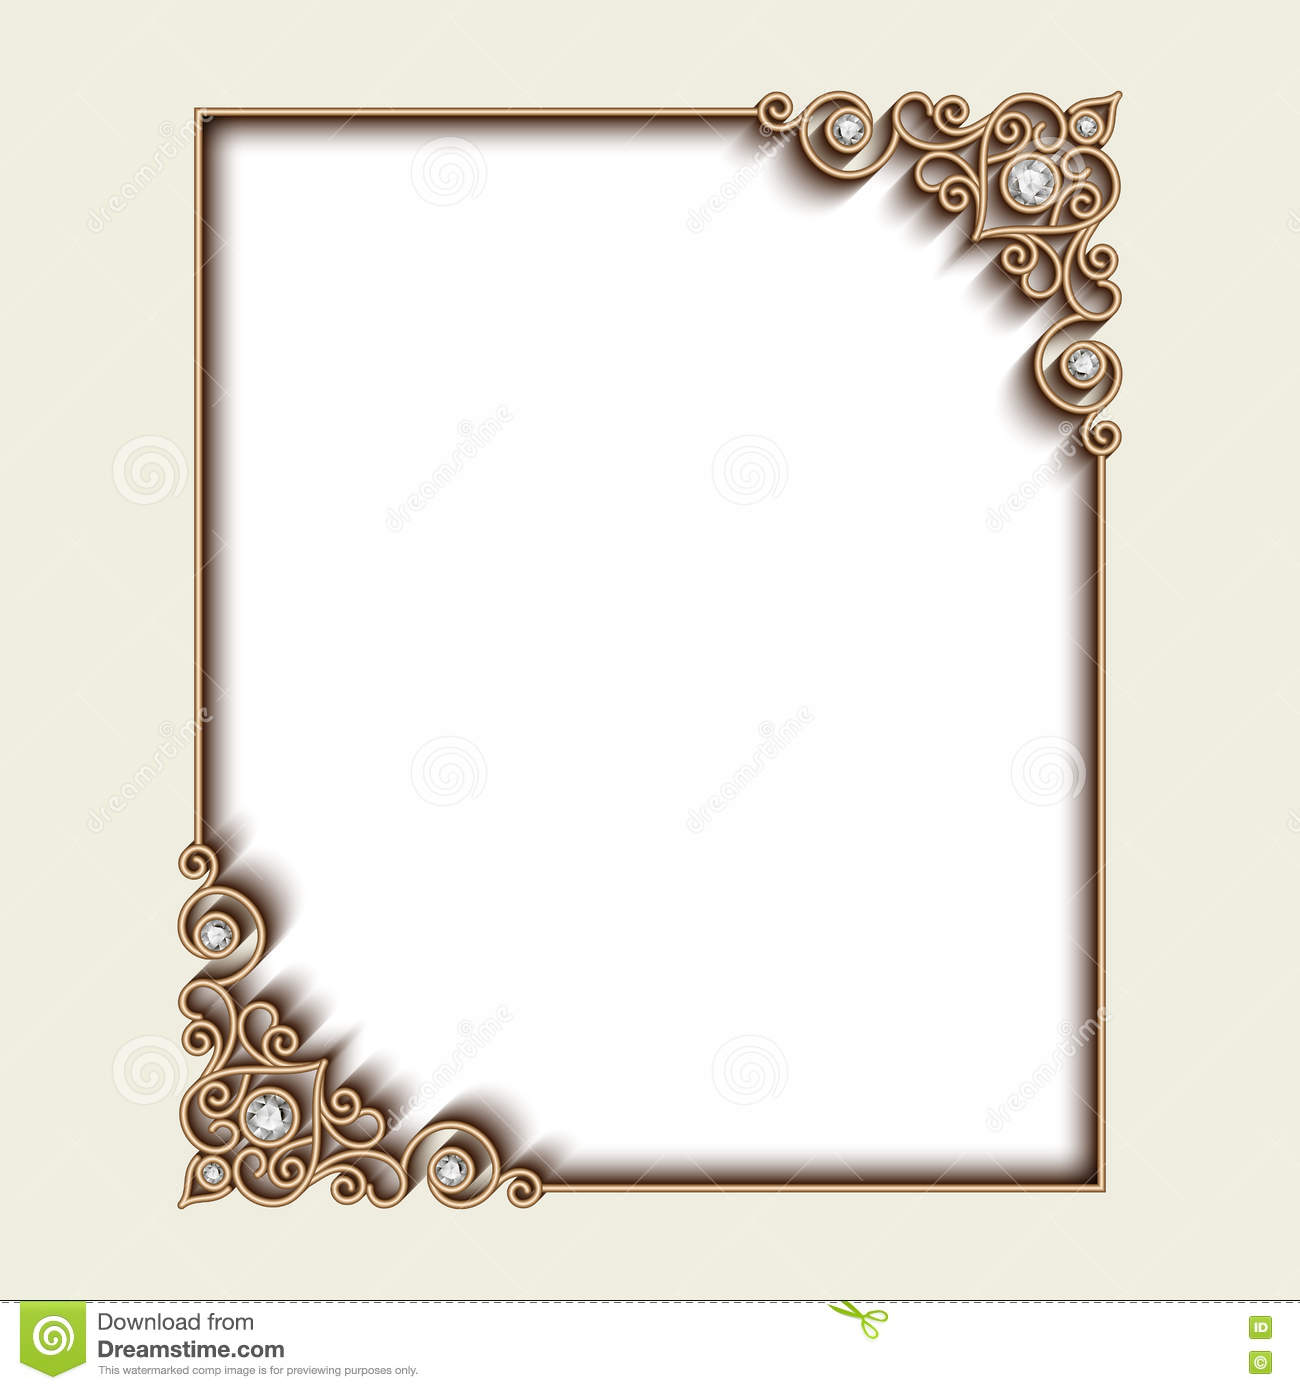 Gold Frame With Jewelry Borders On White Cartoon Vector